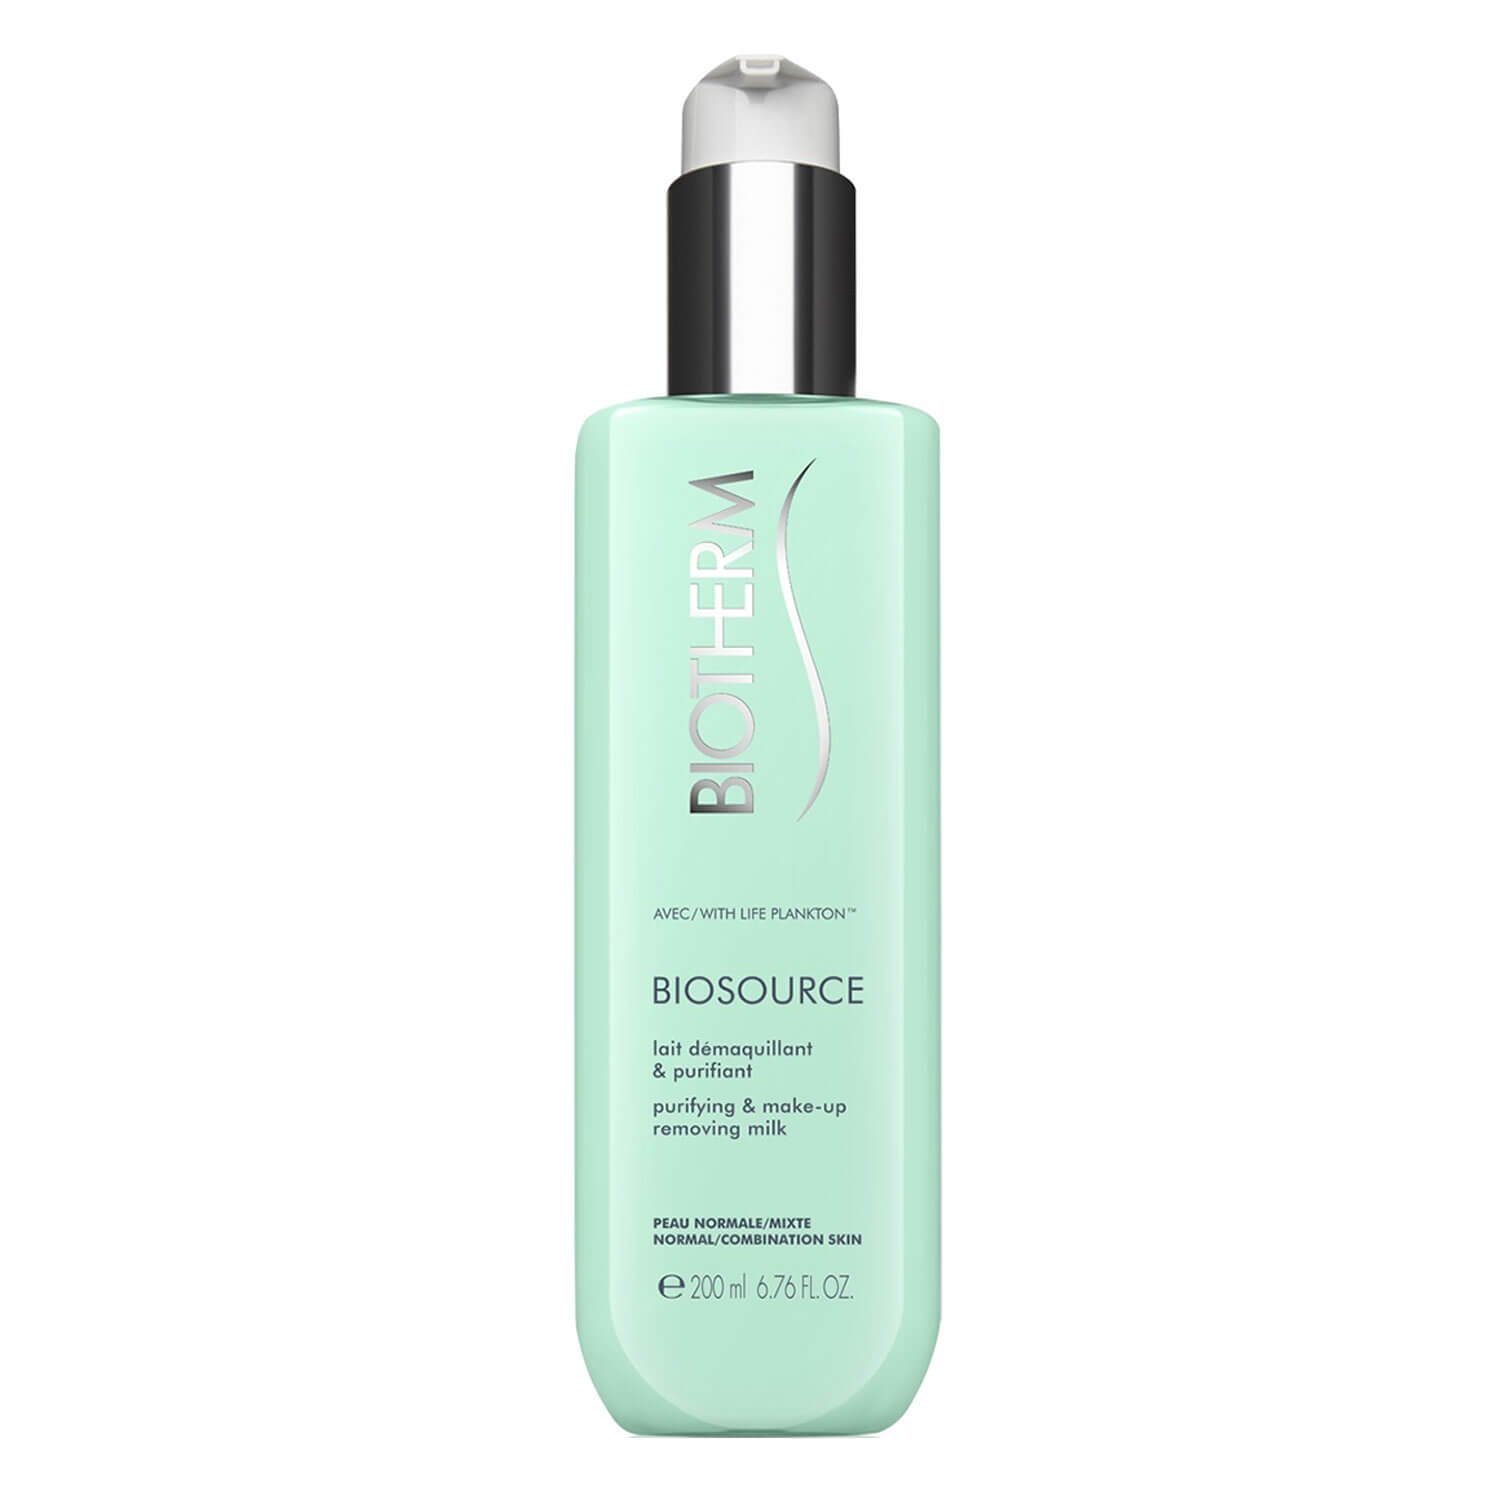 Biosource - Make-Up Removing Milk Normal/Combination Skin